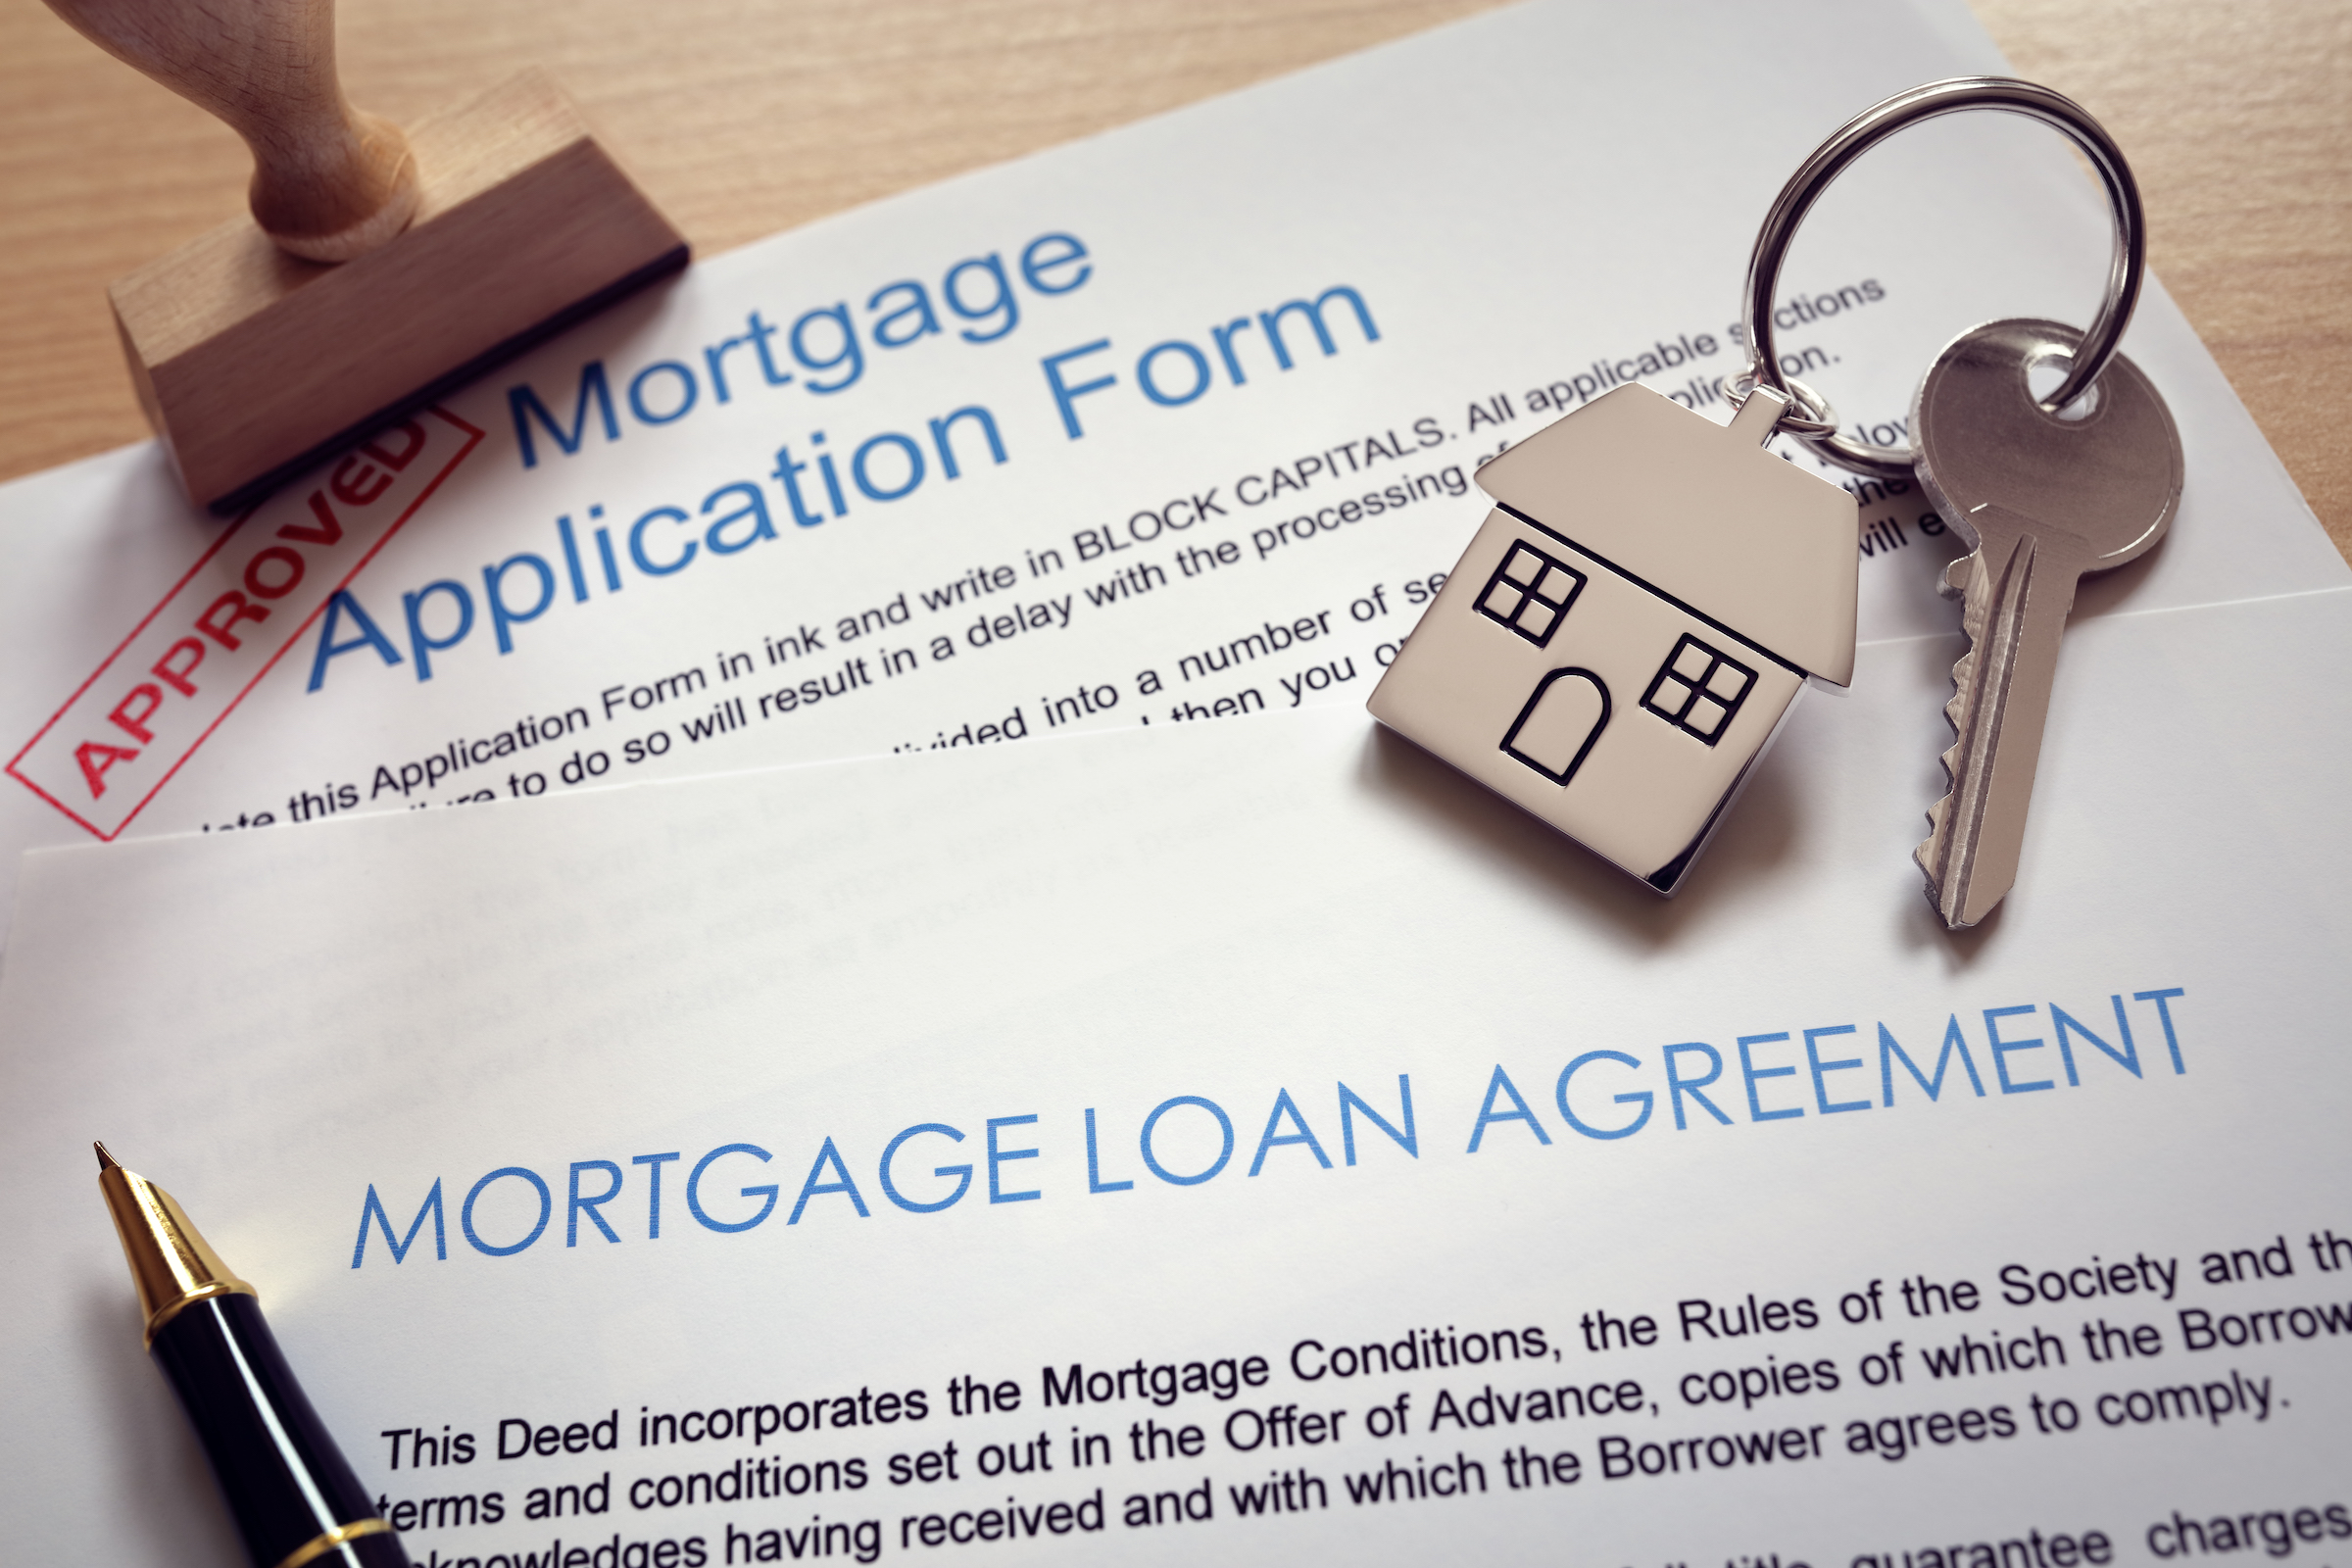 mortgage application loan agreement and house key P5ATR99